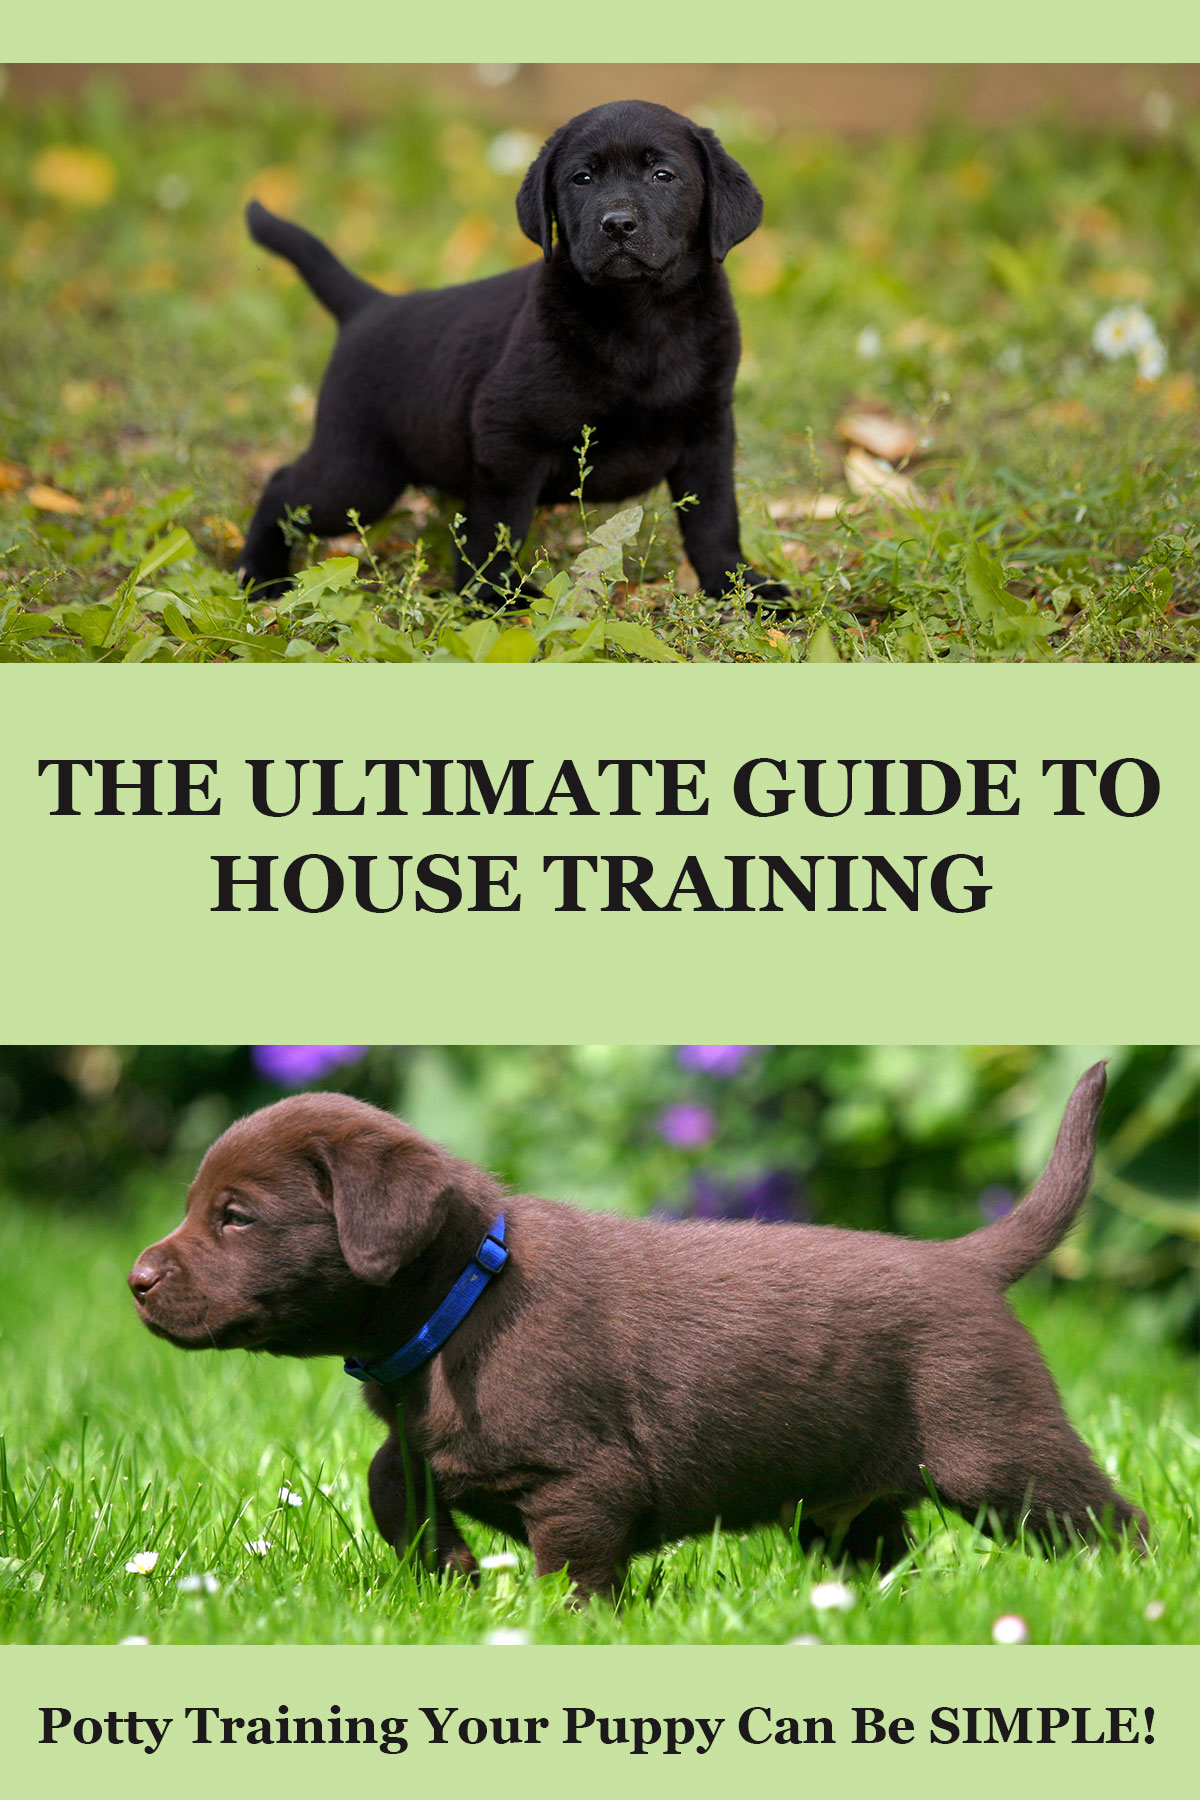 how to potty train a puppy - a complete guide from the labrador site